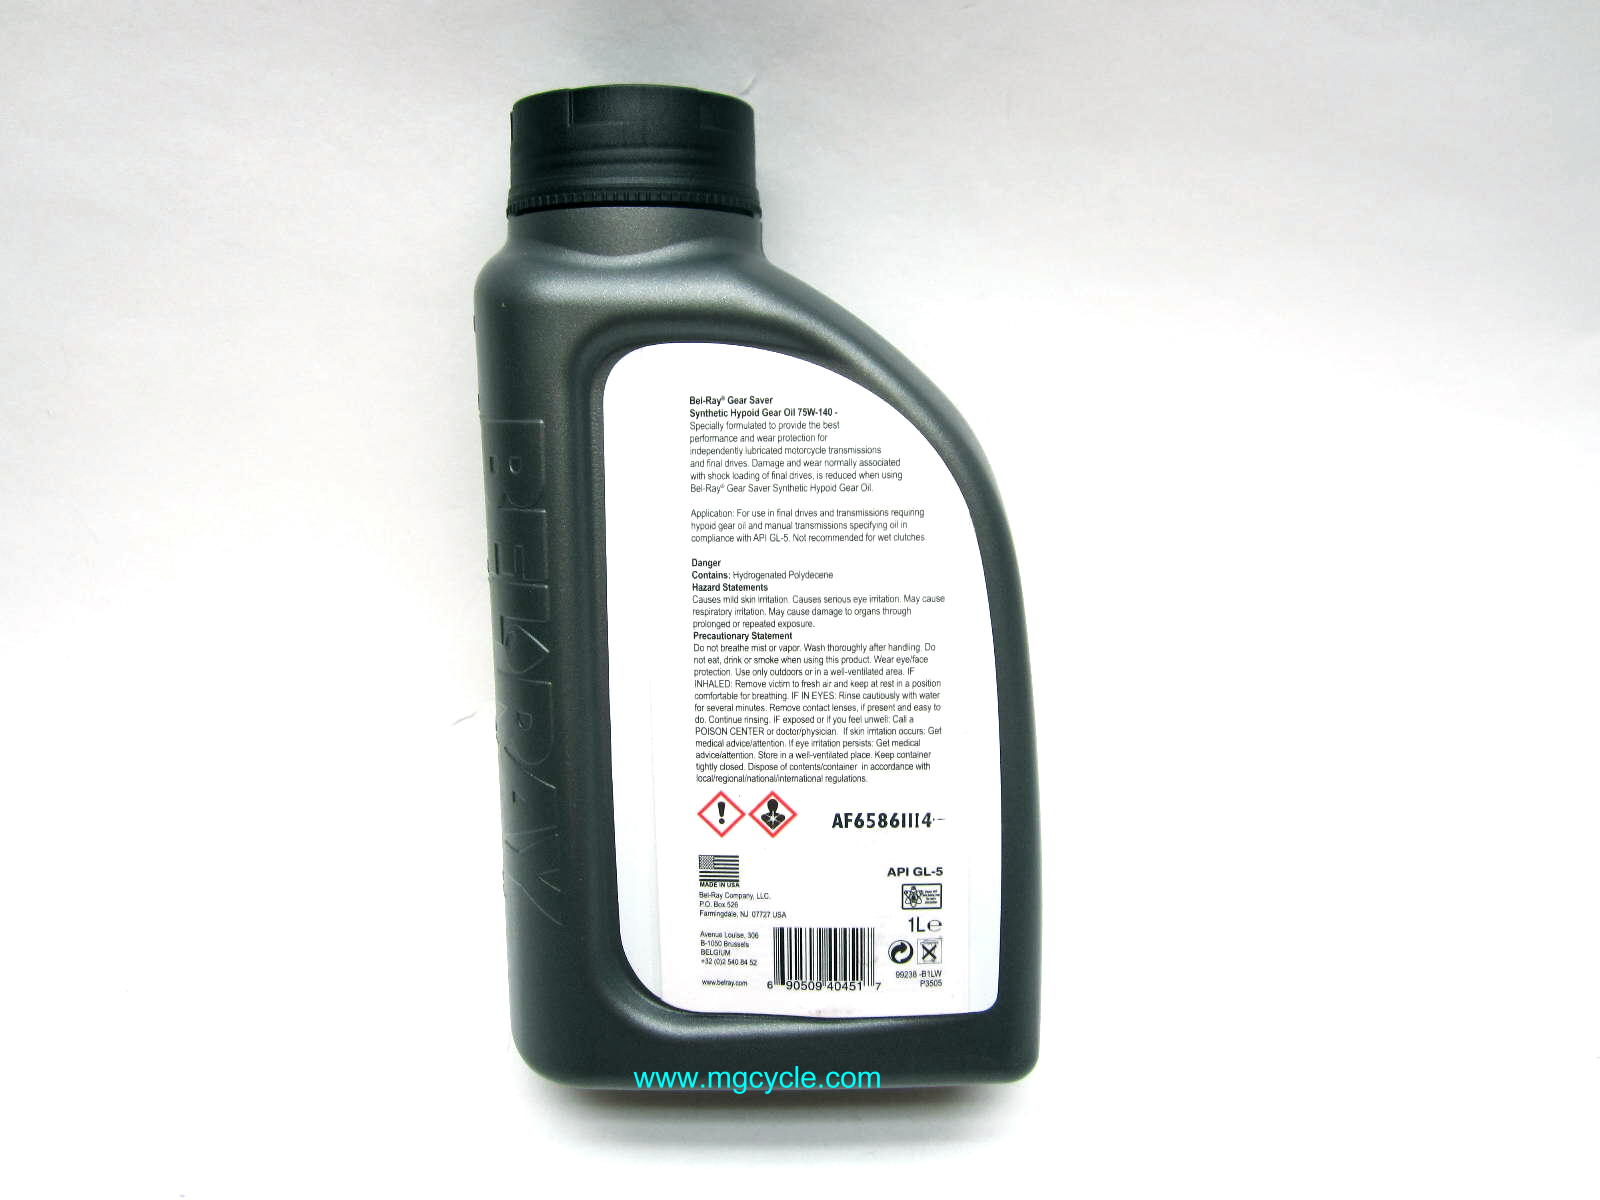 BELRAY synthetic hypoid gear oil 75W140